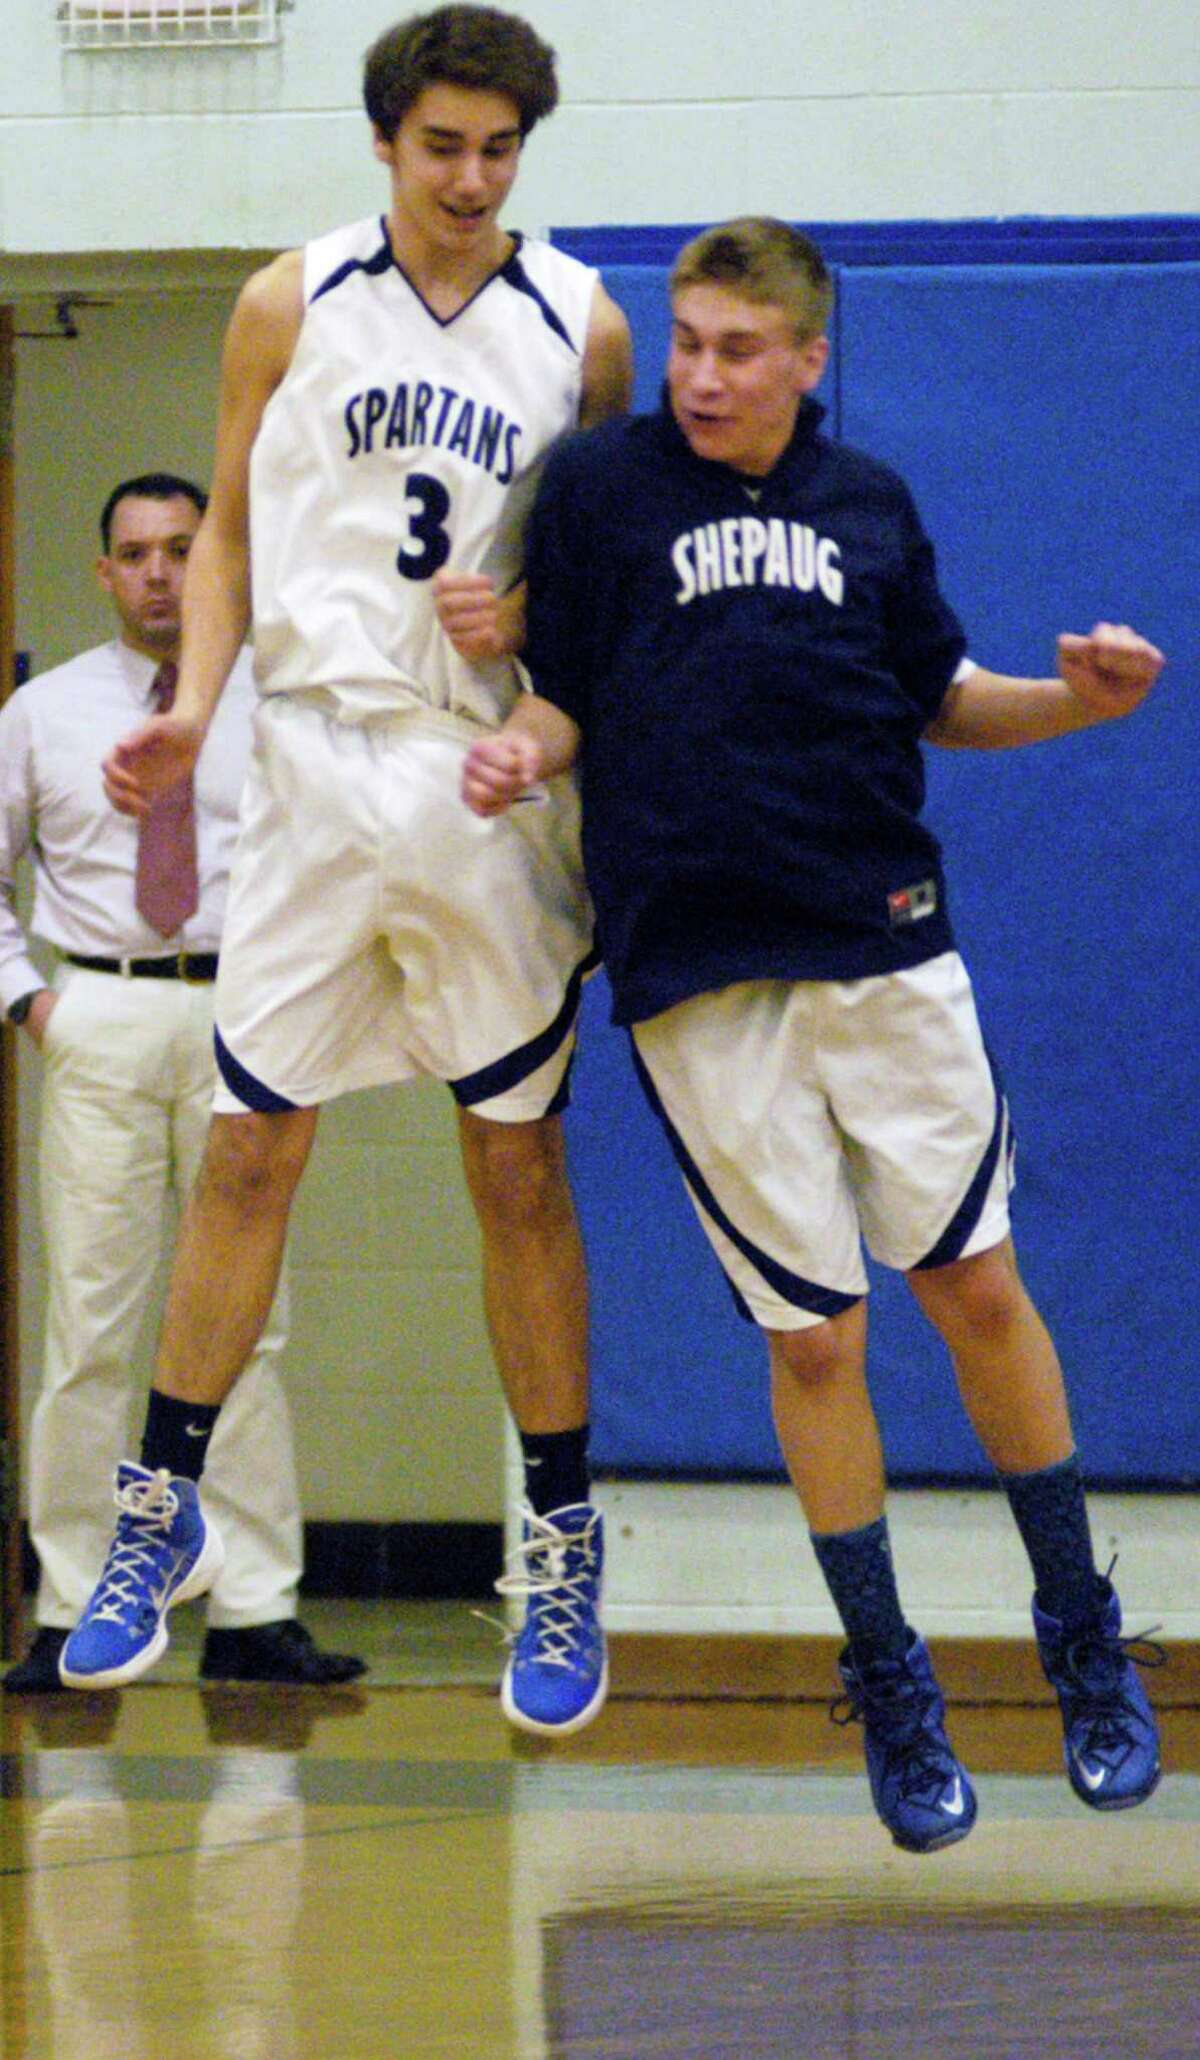 Rob McCarthy, left, of the Spartans is greeted in mid-flight by teammate Mike Taylor during pre-game introductions before Shepaug Valley High School boys' basketball's 62-53 victory over Housatonic Valley Regional, Jan. 23, 2015 in Washington. Looking on is Shepaug Valley School security guard Andrew St. Jean.